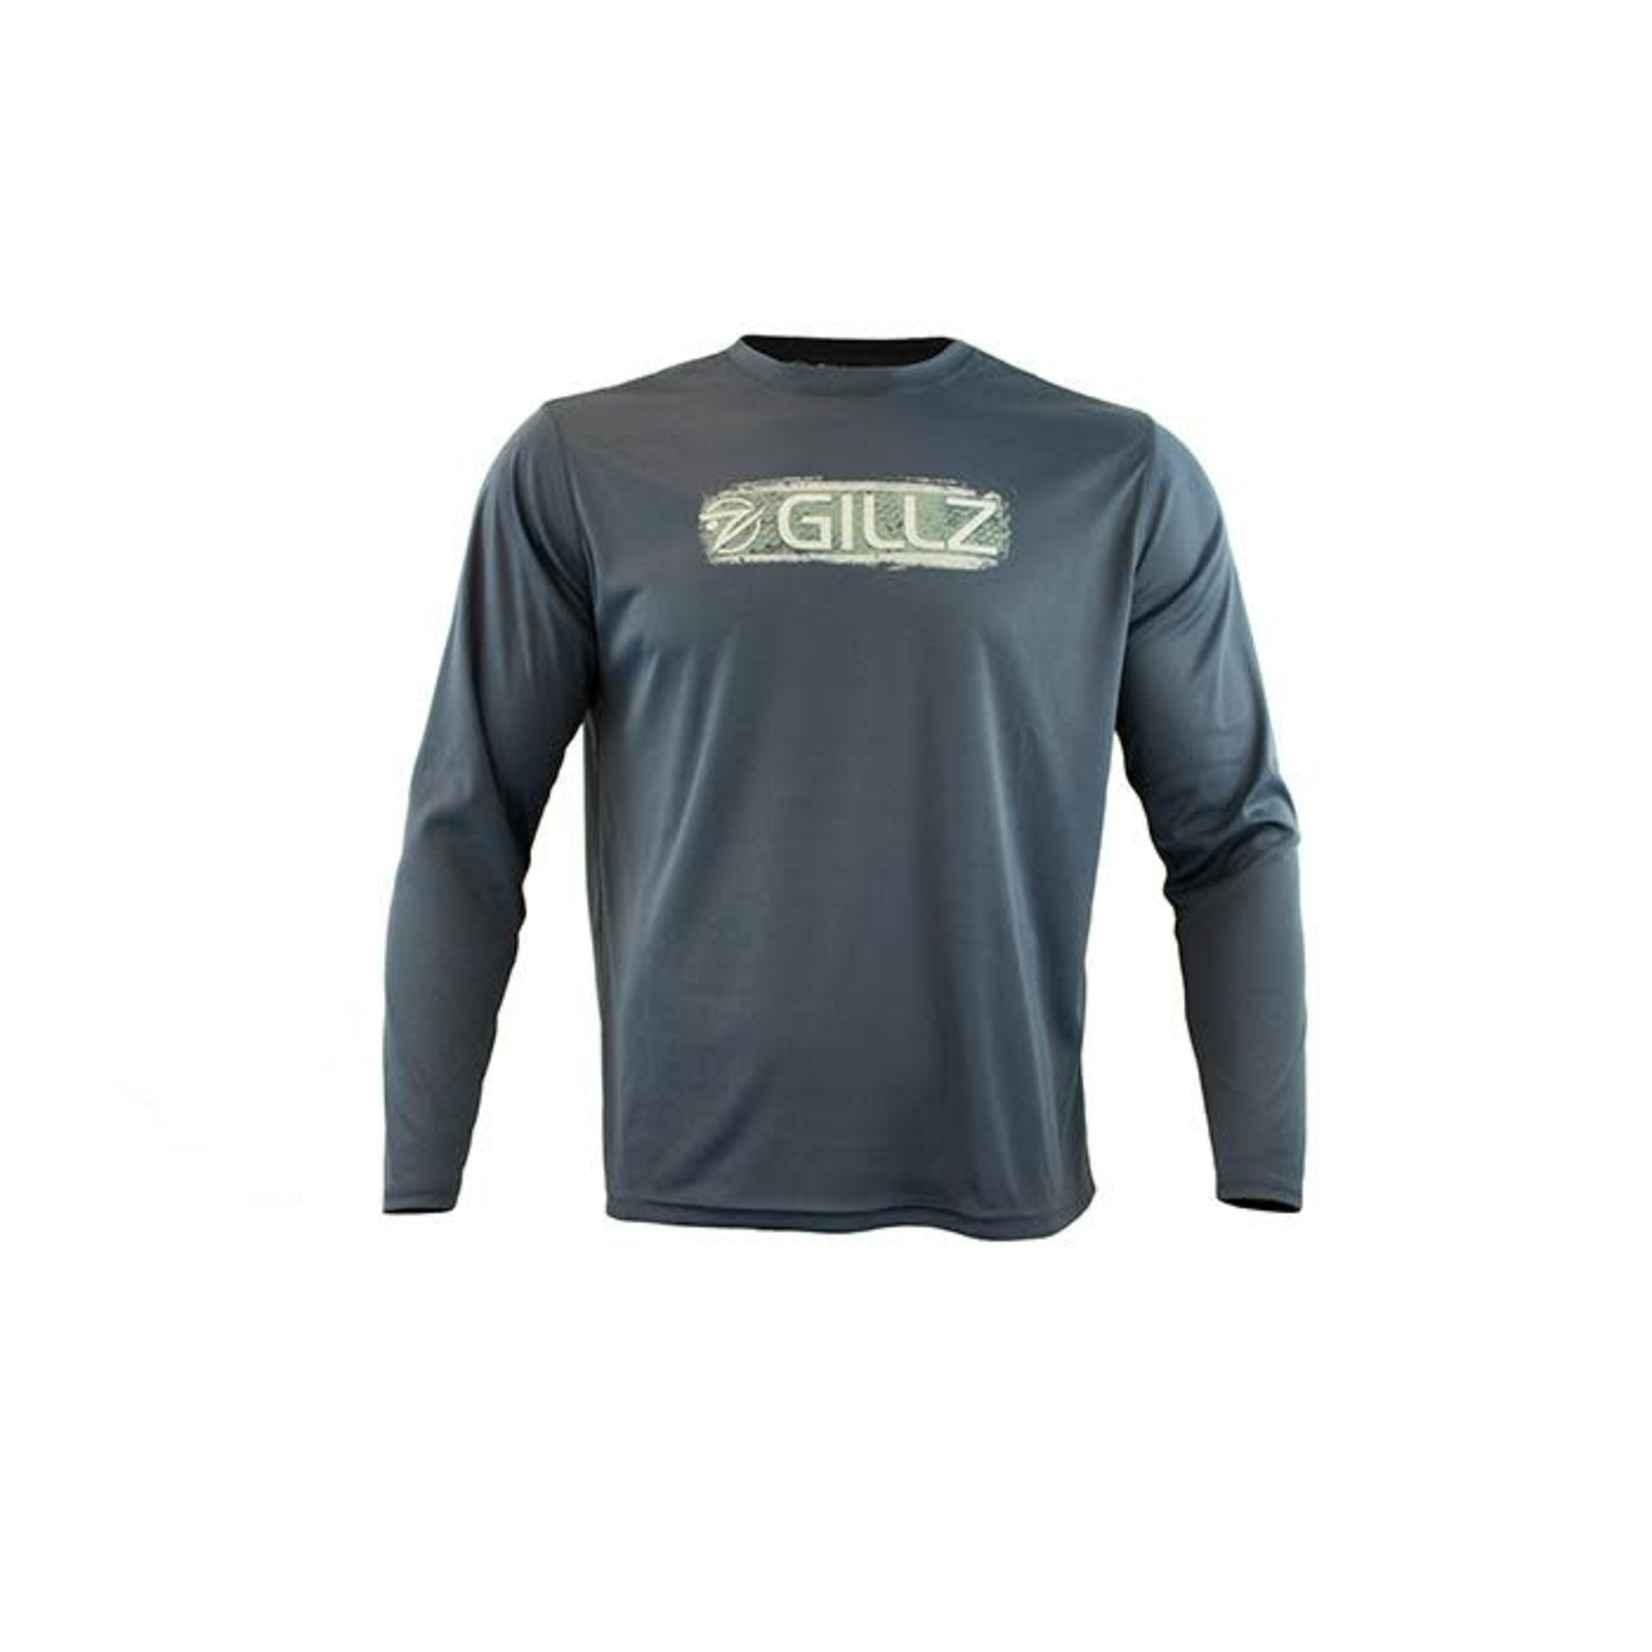 "GILLZ MEN'S LONG SLEEVE UV ""GRUNGE SCALE STRIPE"""